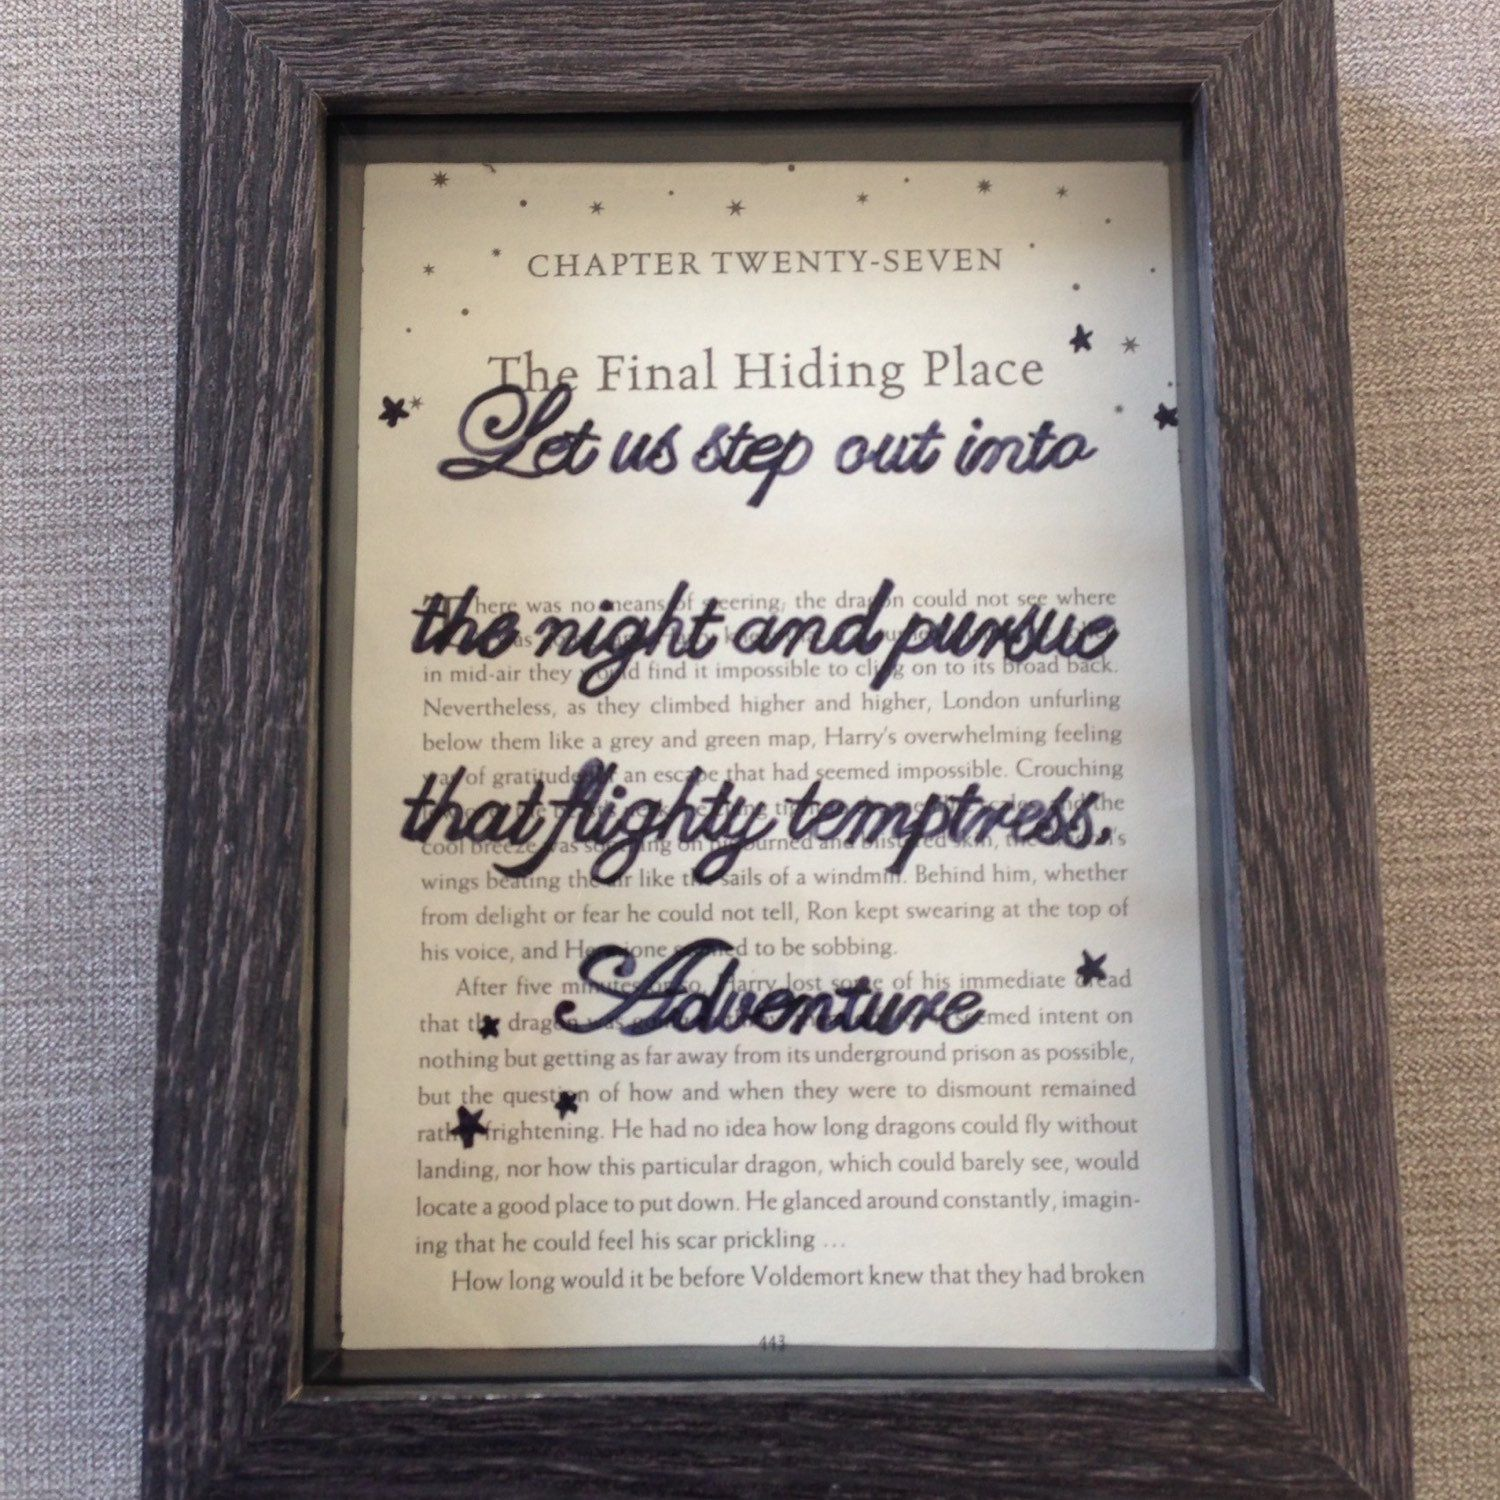 Harry potter quote frame let us step out into the night and harry potter quote frame let us step out into the night and pursue that flighty jeuxipadfo Gallery